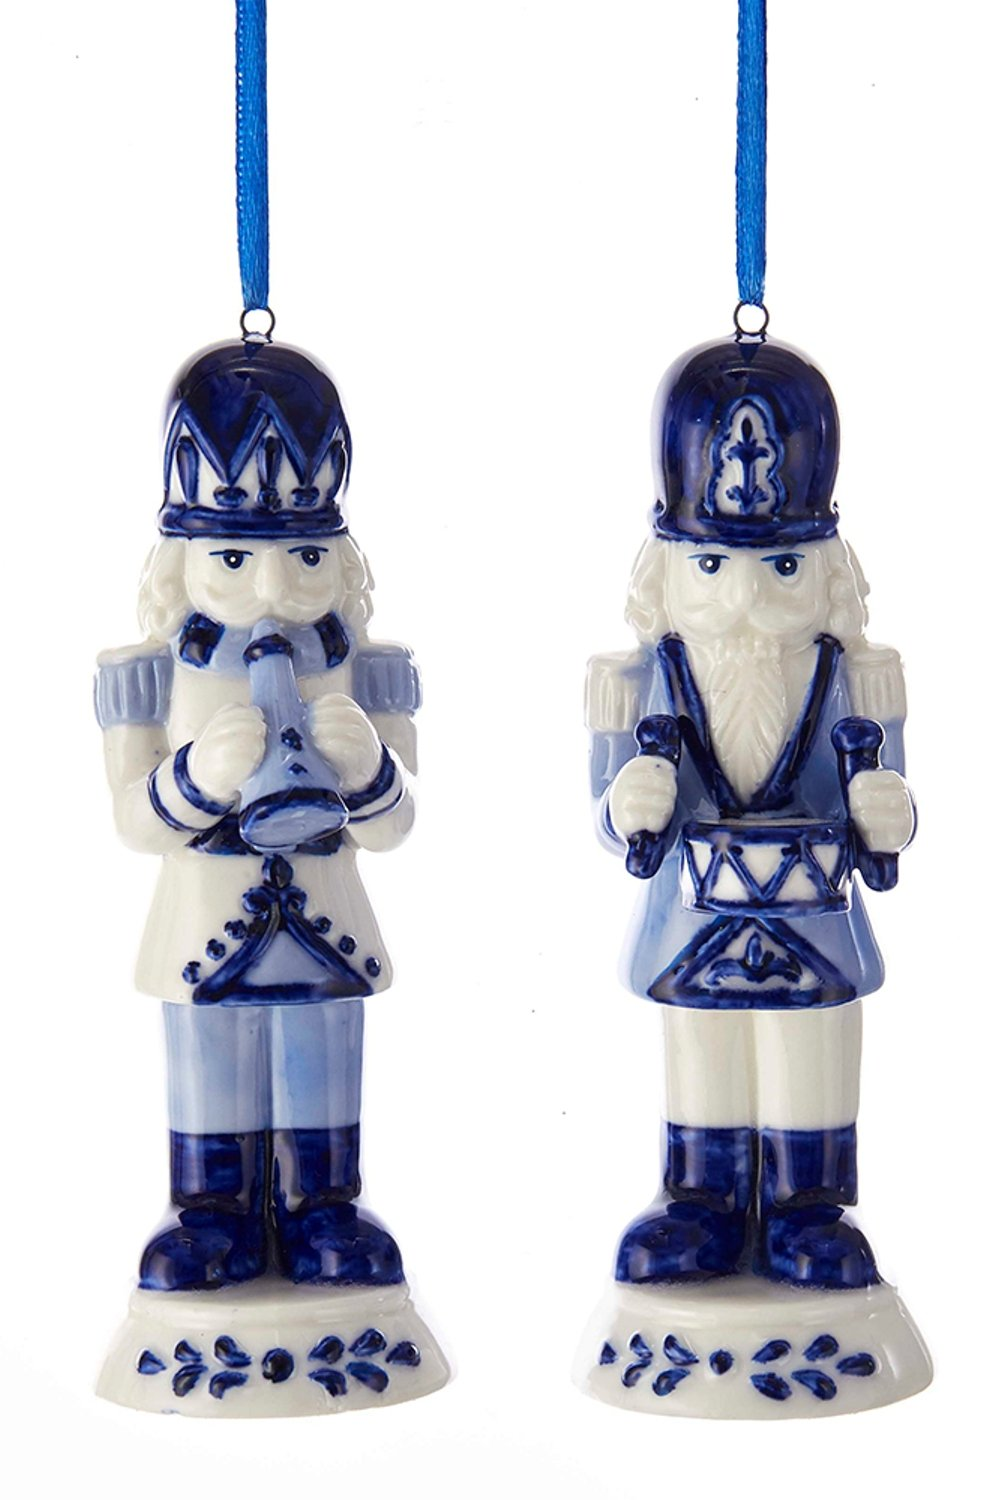 Kurt Adler Delft Blue Nutcracker Figures Christmas Holiday Ornaments Set of 2 Porcelain